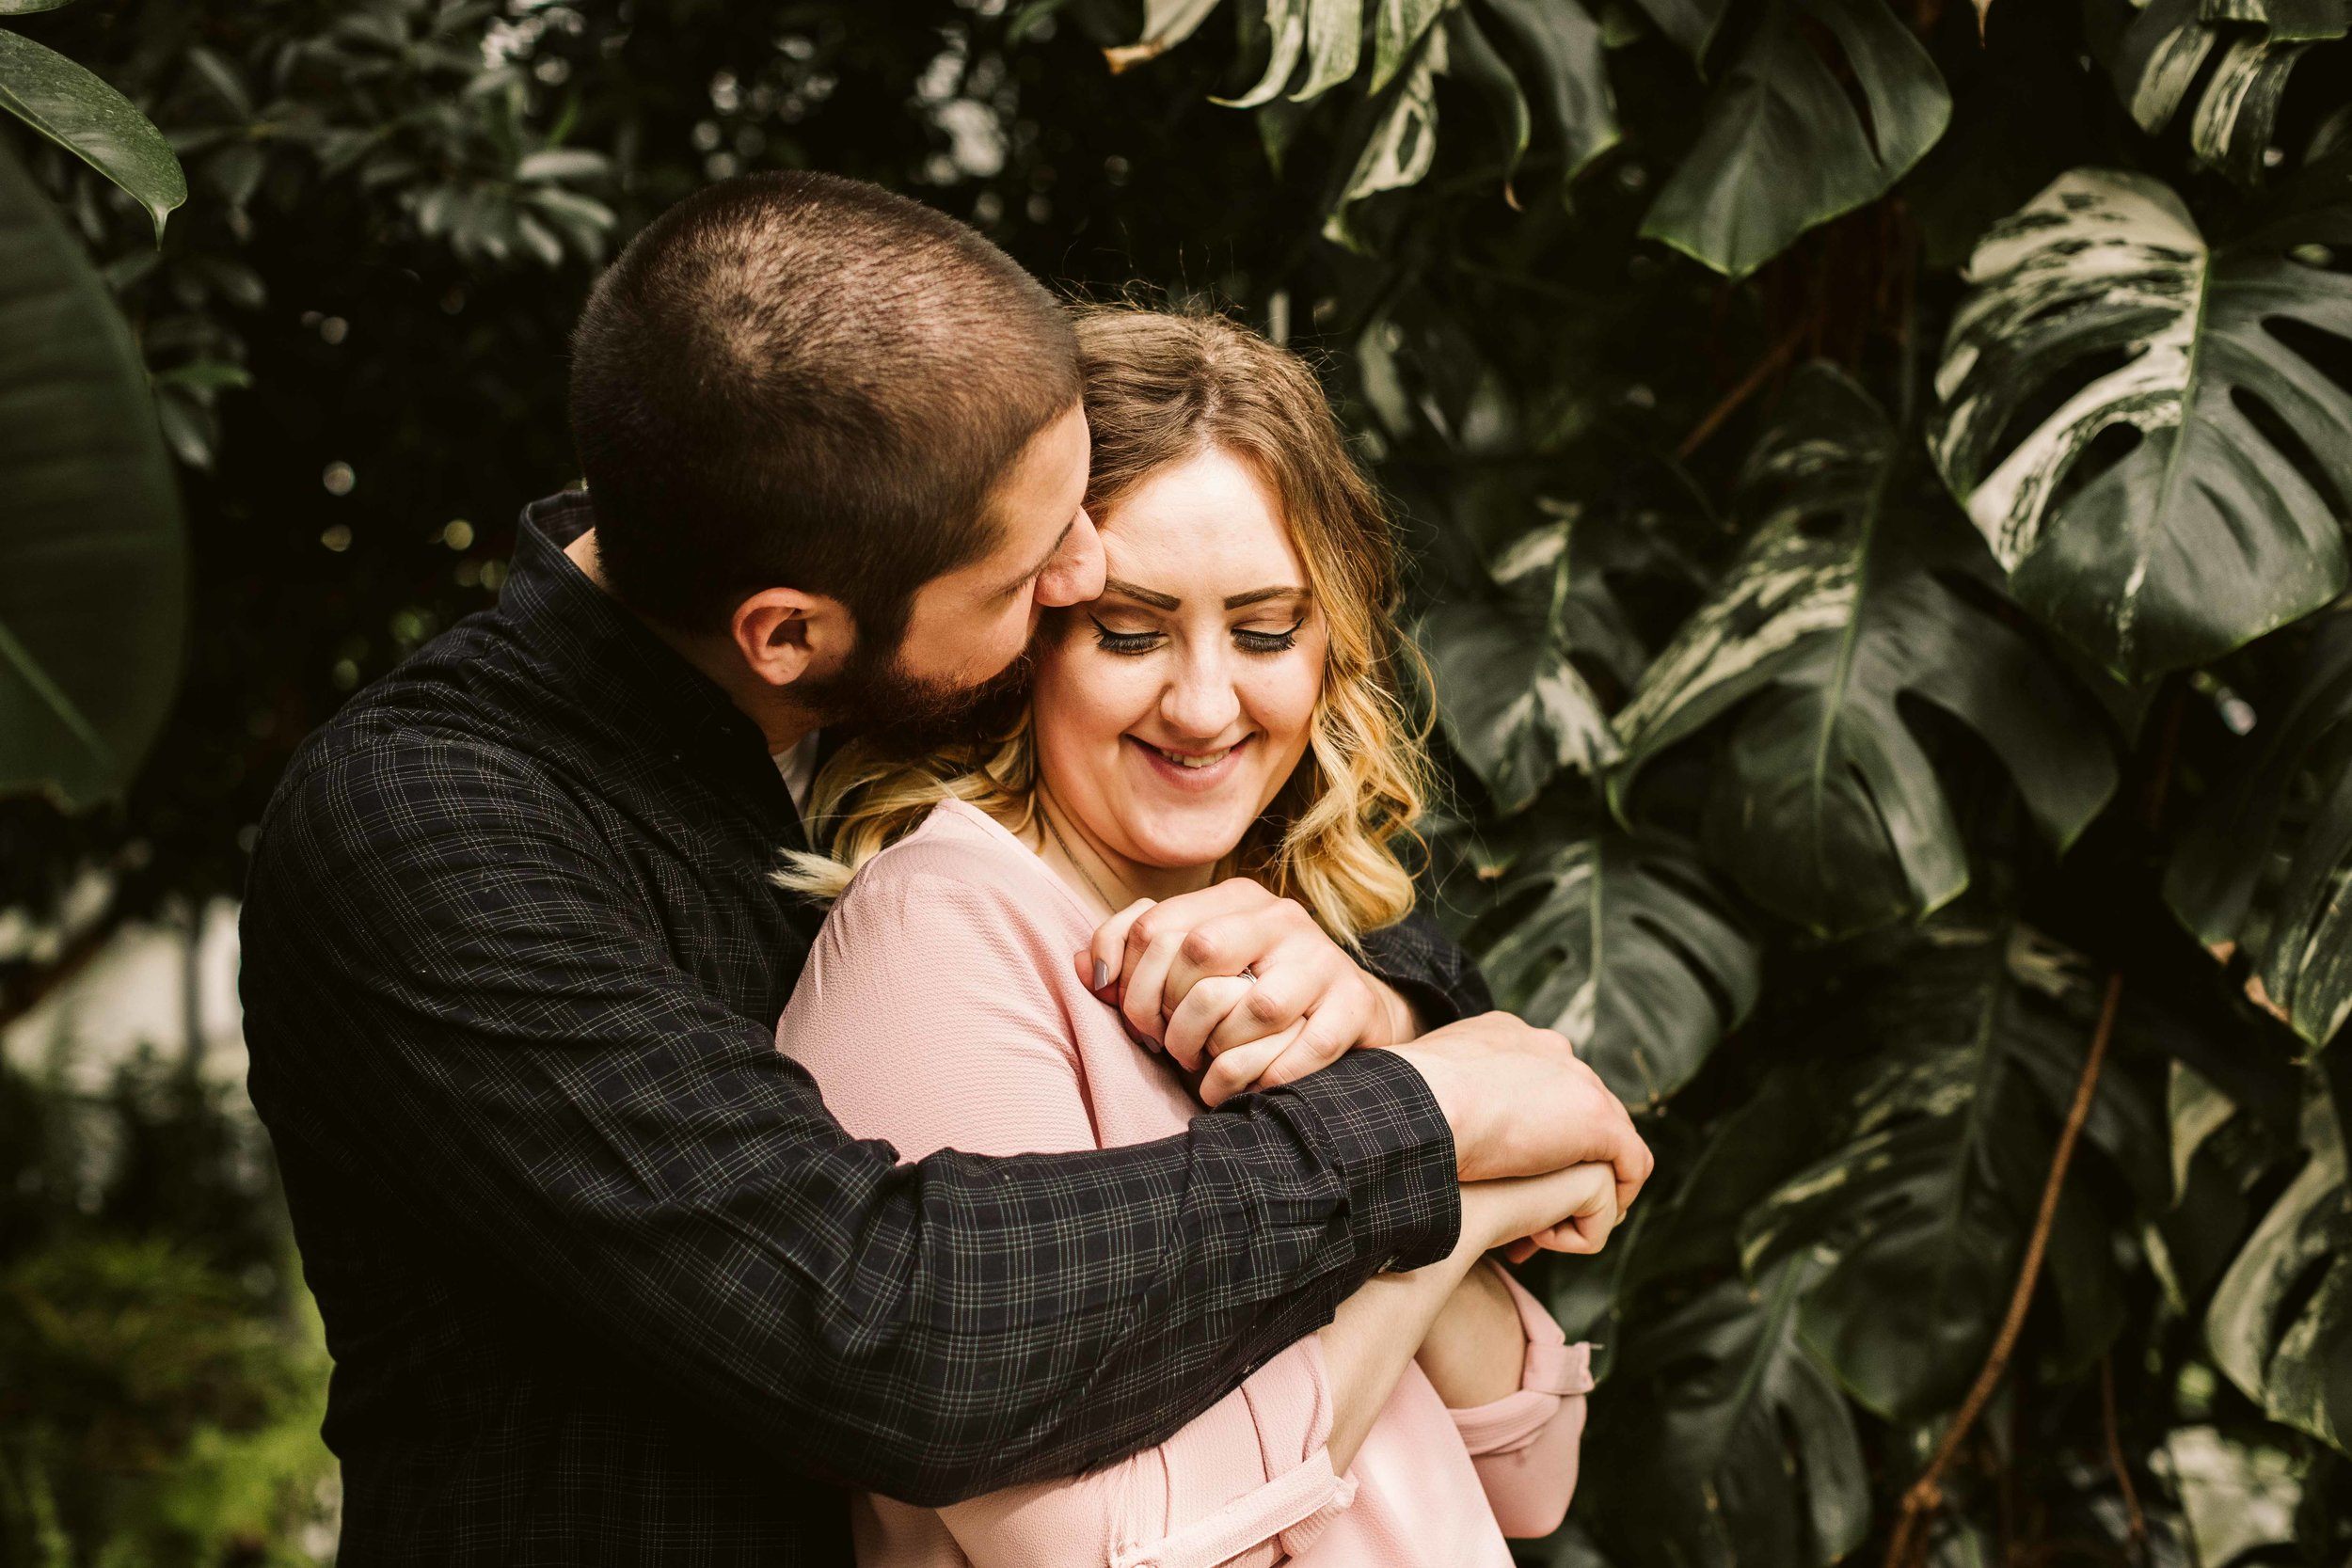 spokane-engagement-photographer-31.jpg